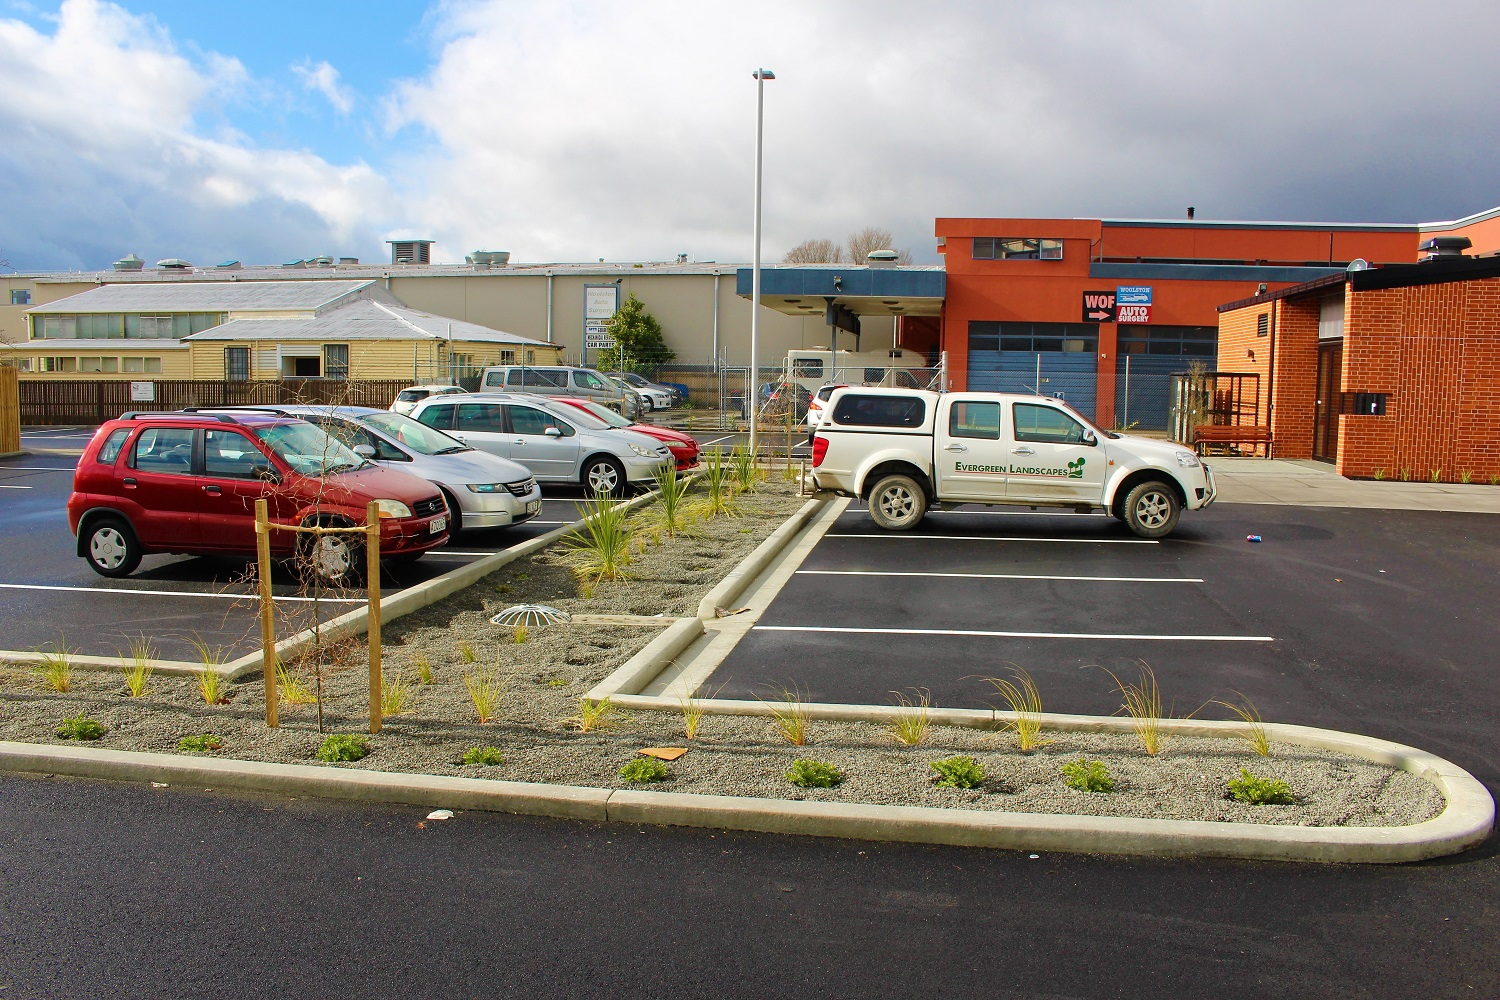 Landscaping in a car park with small pebbles, trees and plants in curbed garden bed